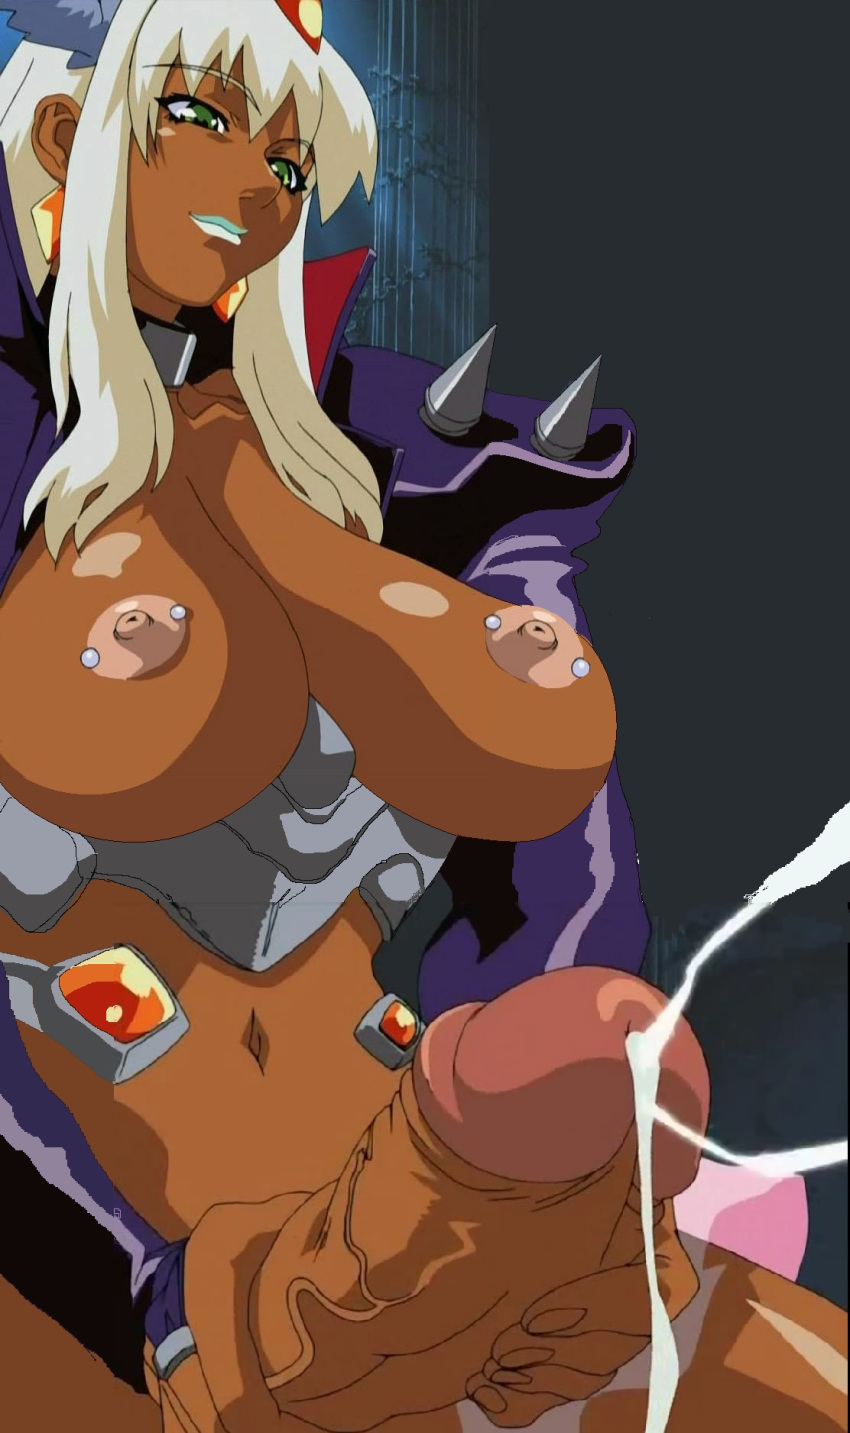 Angel Blade Anime Porn angel blade futa - 18 years old - www bigtities com